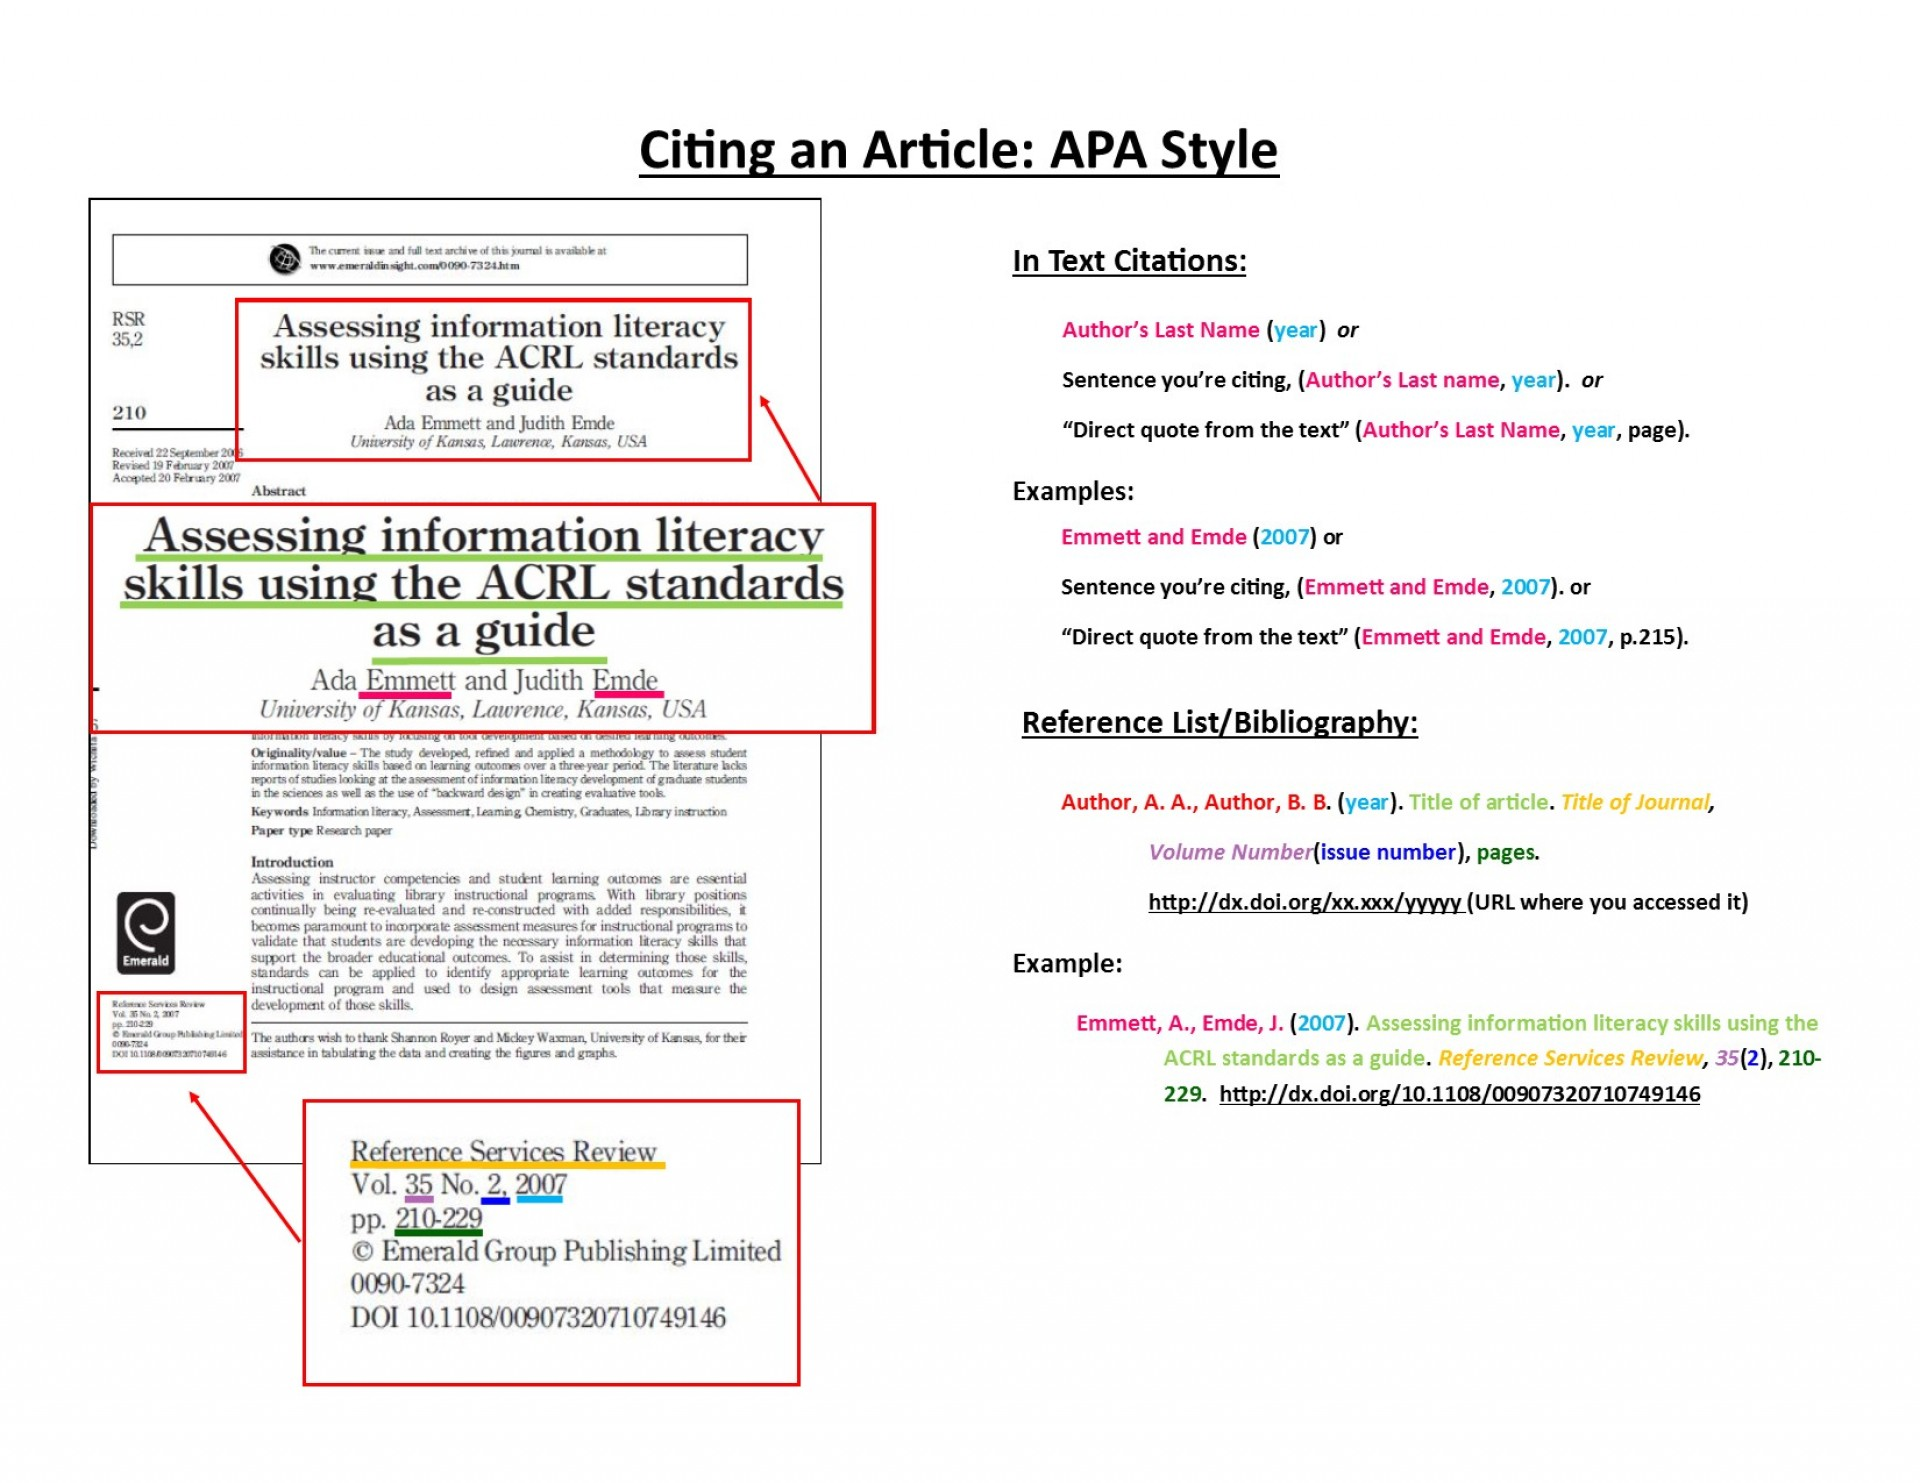 016 Apa Journal Citation Research Paper How To Reference Articles Sensational Cite Web A Article Title In Text Online Format 1920